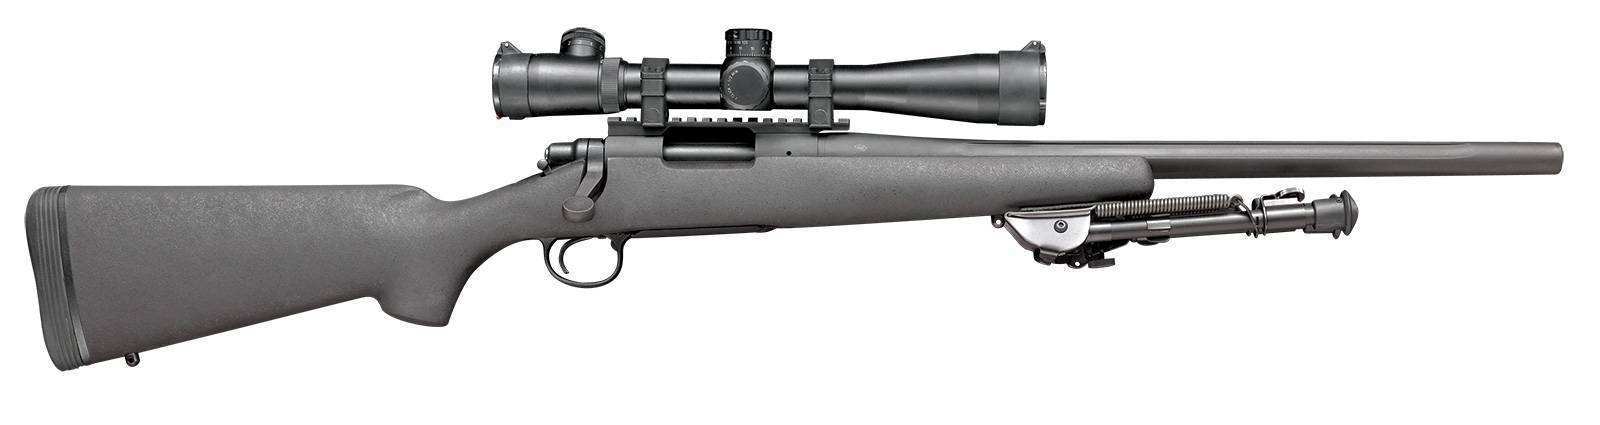 Снайперская винтовка Remington model 700 Police